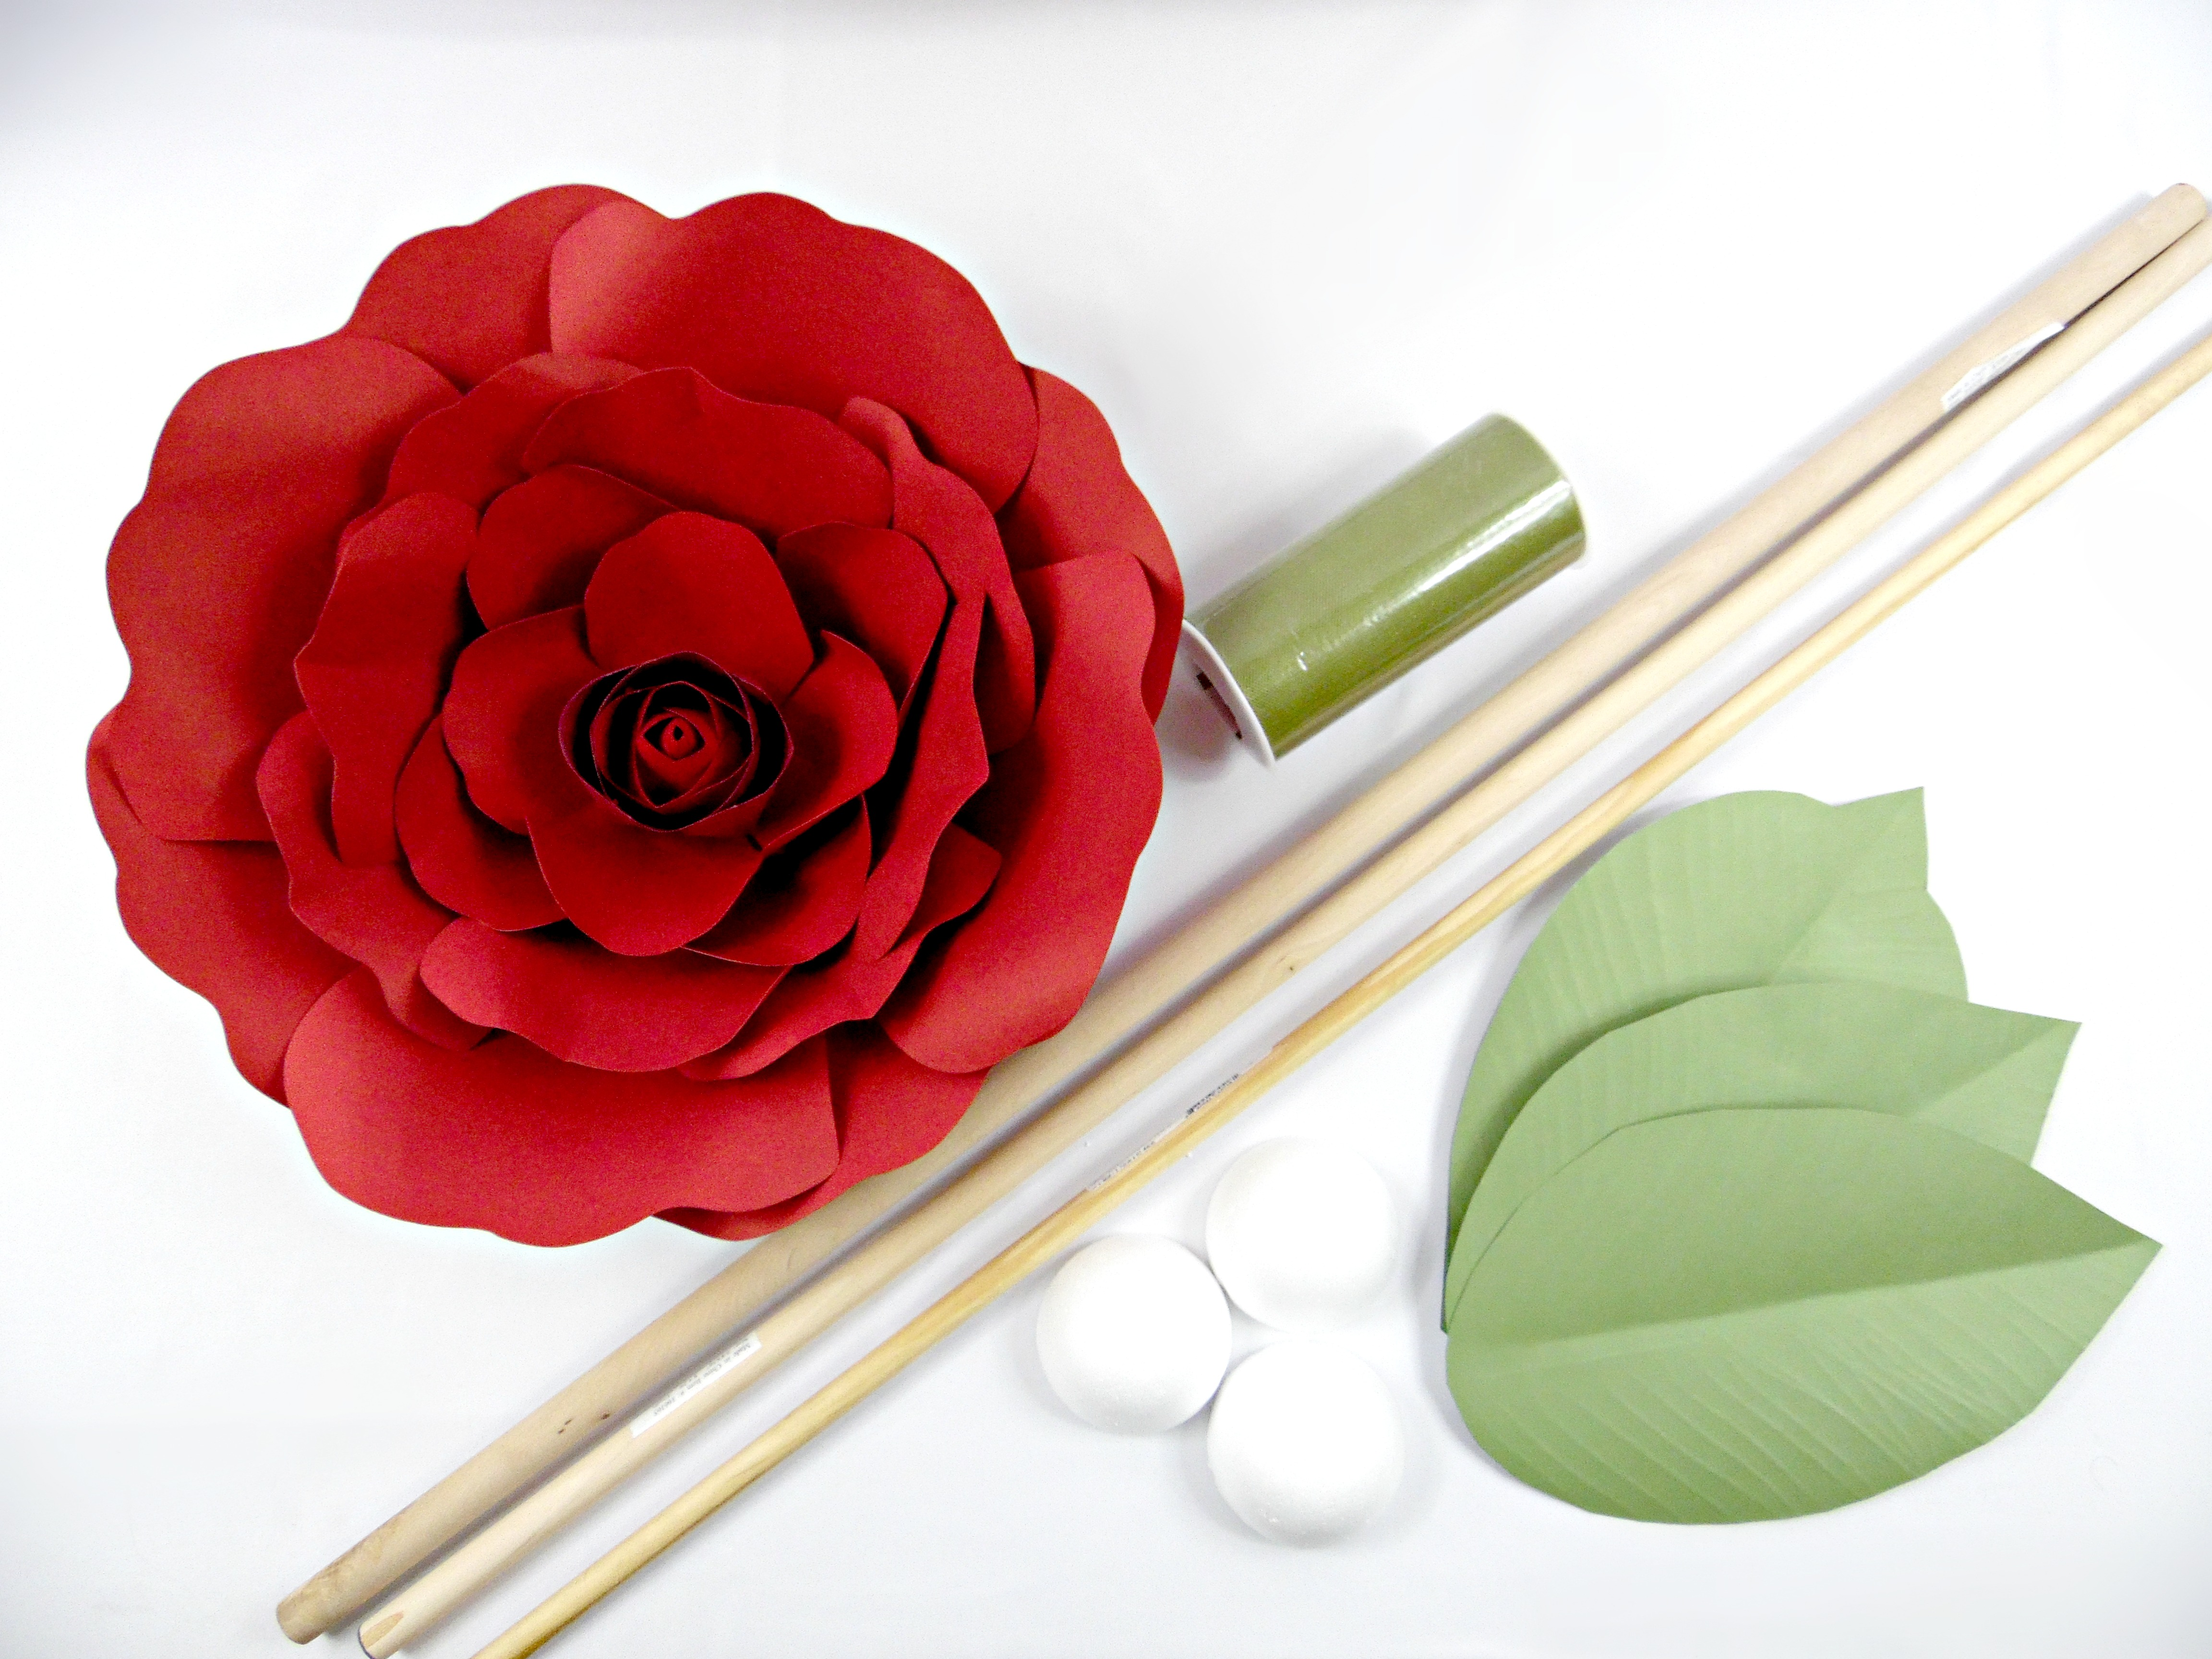 How to make a paper rose with stem step by